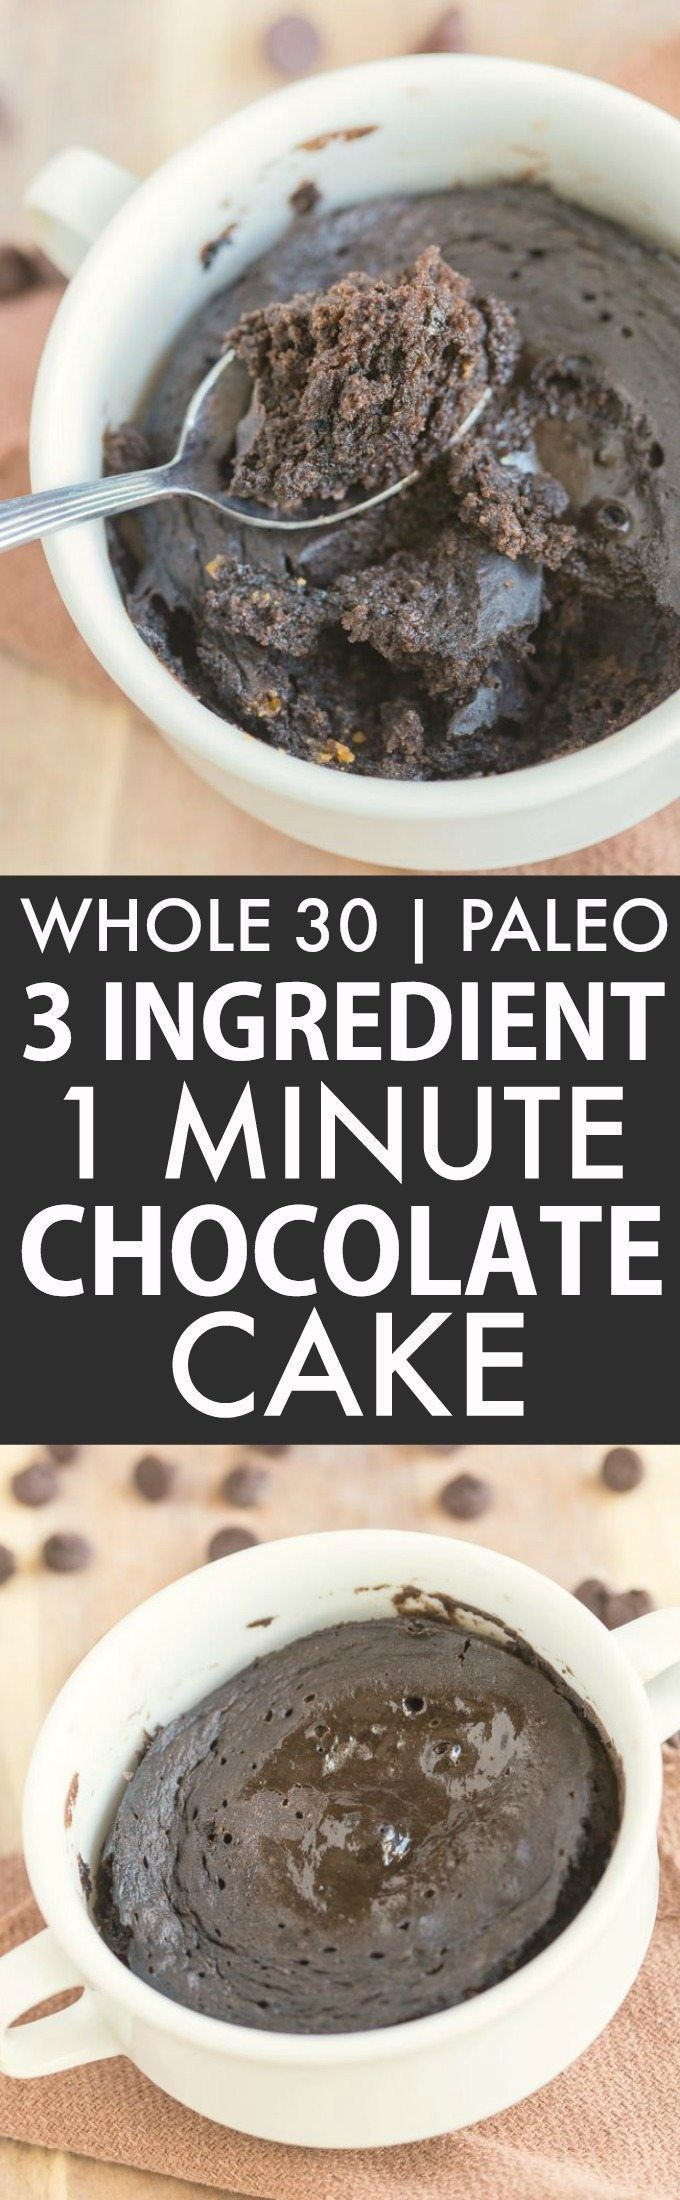 3 Ingredient 1 Minute Chocolate Cake Bake (Whole 30, Paleo, V, GF)- Whole30 friendly breakfast or snack which uses just THREE ingredients- Flourless, grain-free and fruit based and sweetened! Microwave mug cake or oven option! {whole 30, paleo, vegan, gluten free recipe}- http://thebigmansworld.com